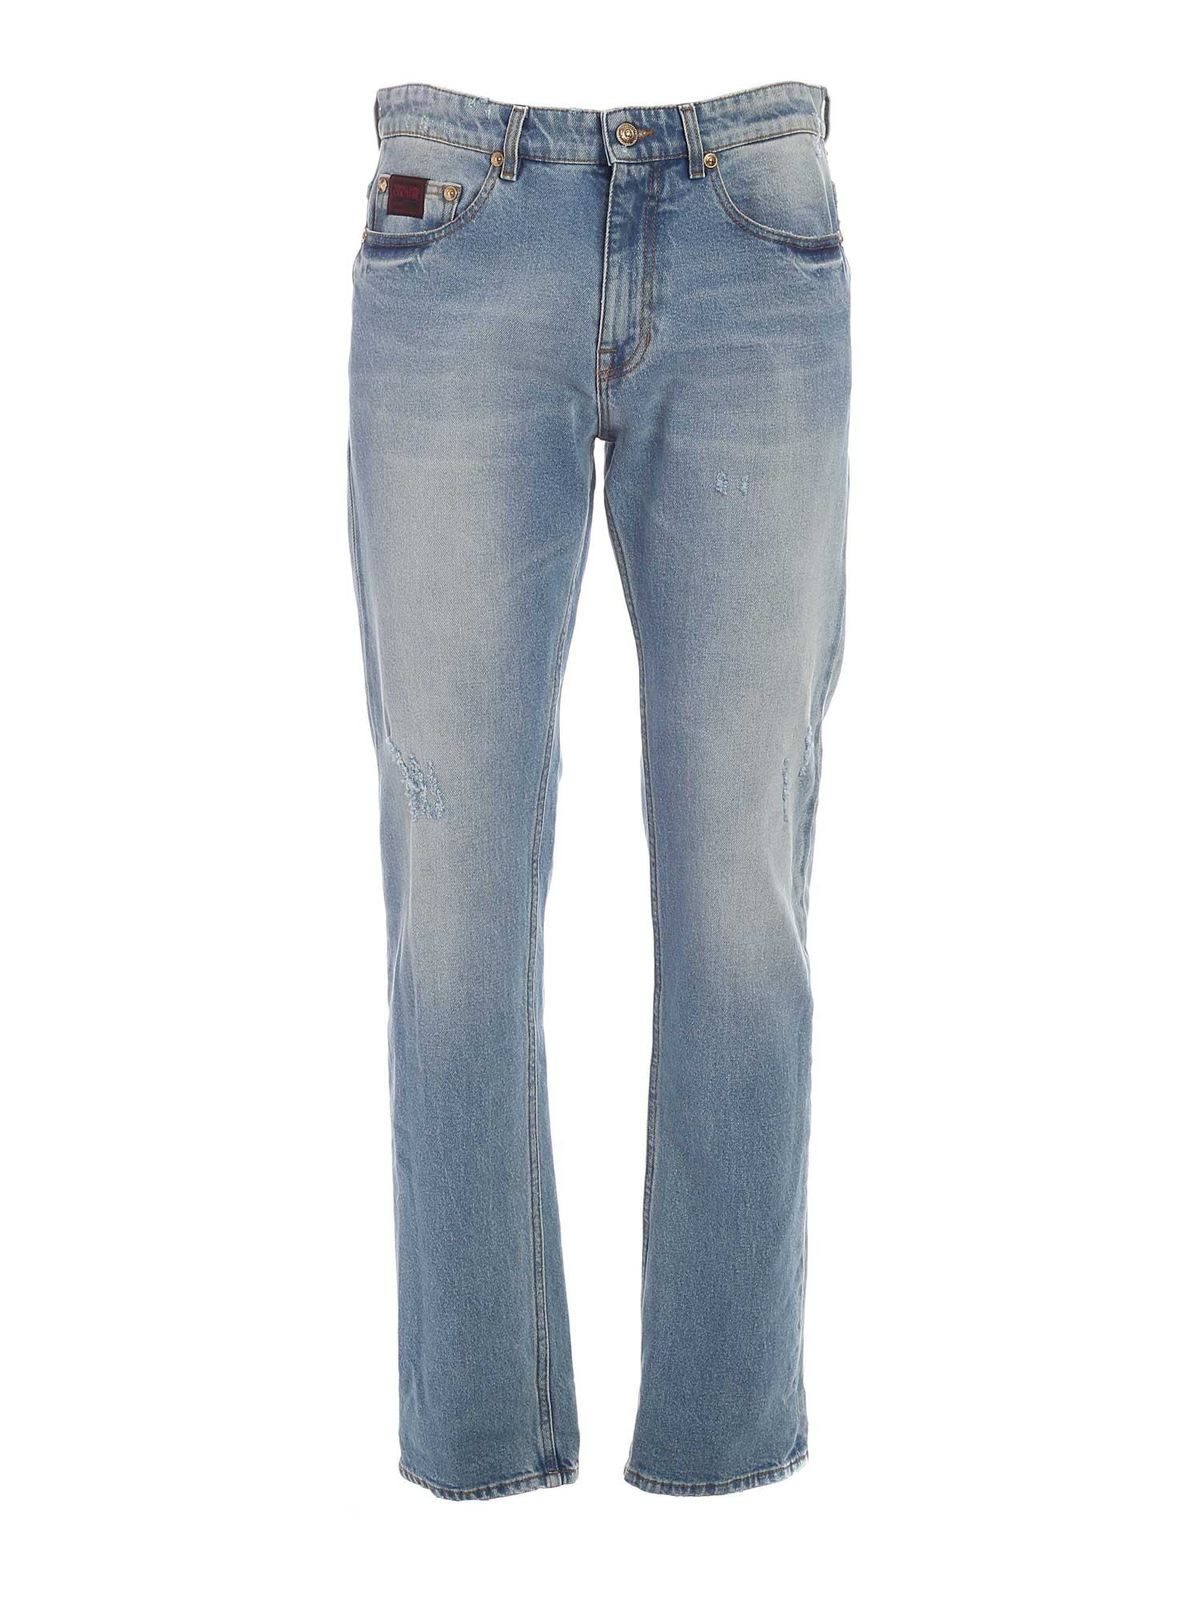 Versace Jeans Couture V-EMBLEM EMBROIDERY JEANS IN LIGHT BLUE